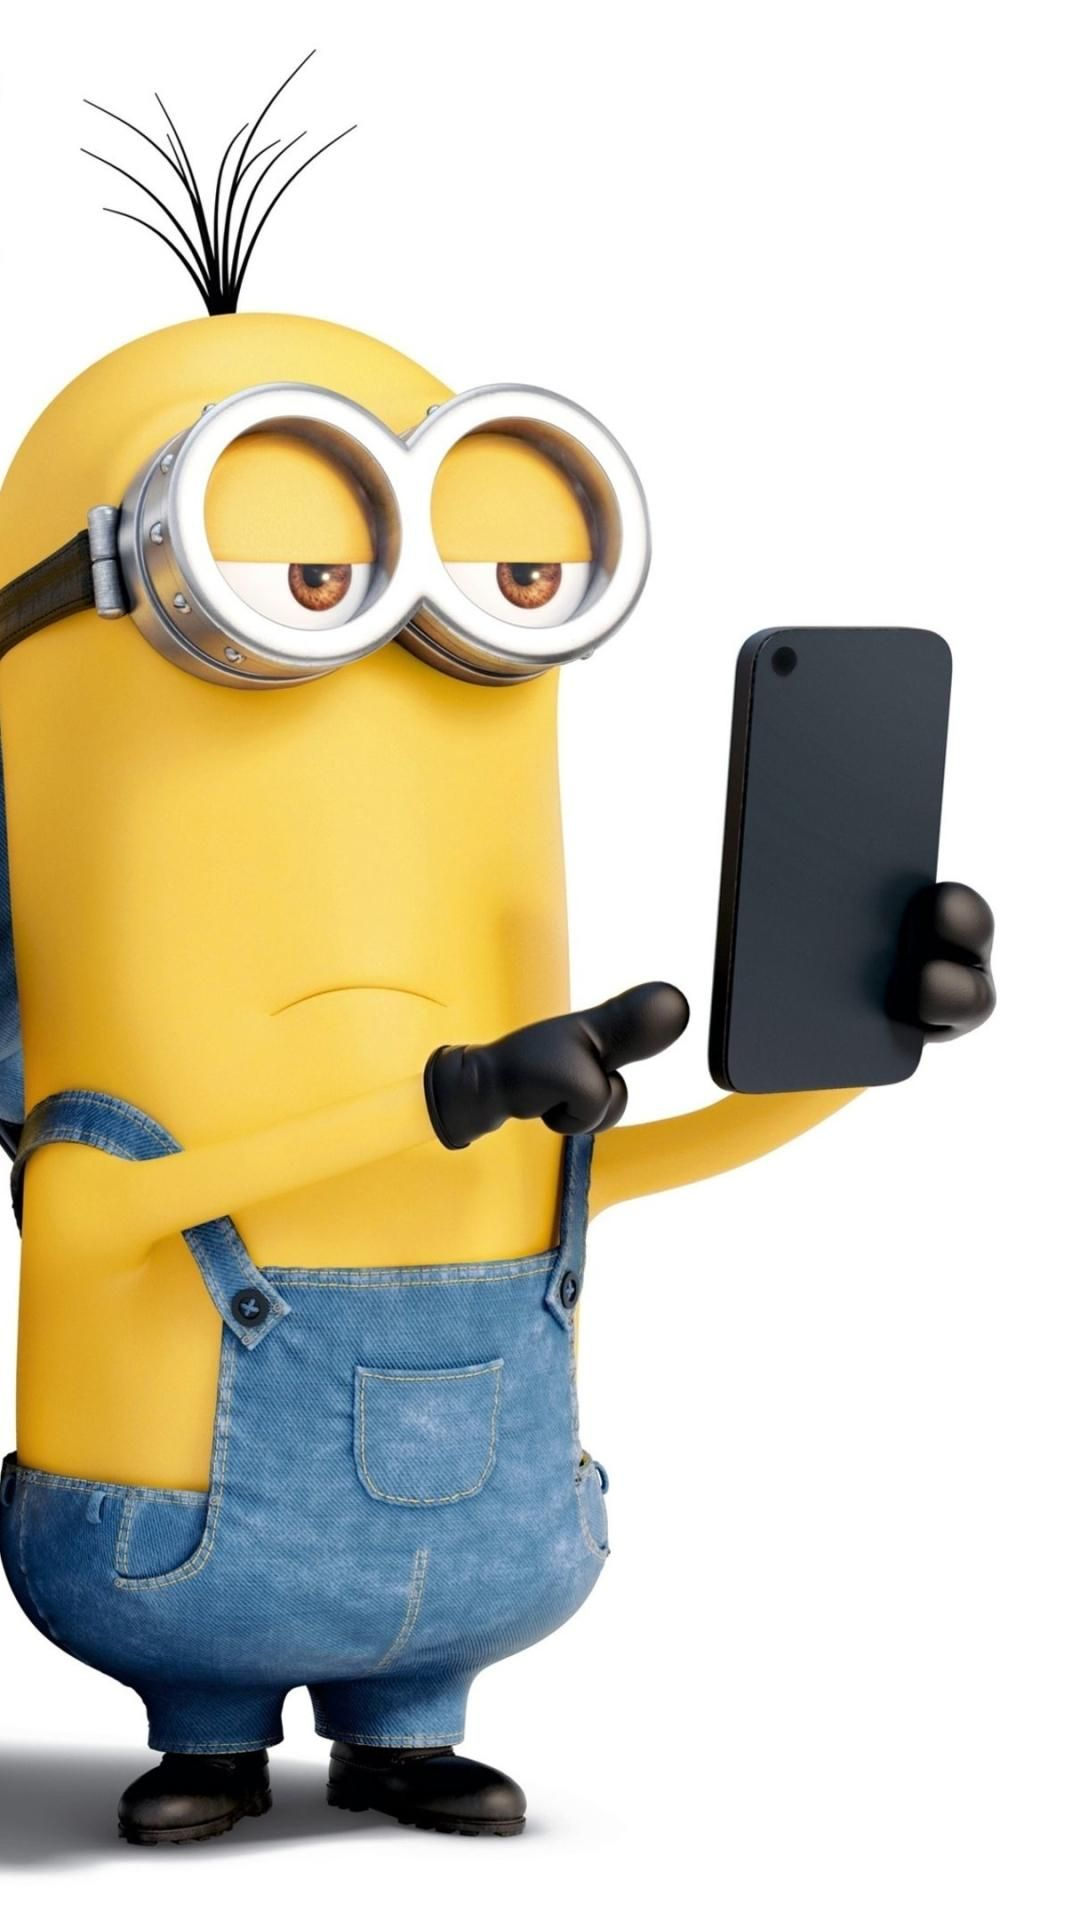 Minion Iphone Wallpaper » Hupages » Download Iphone